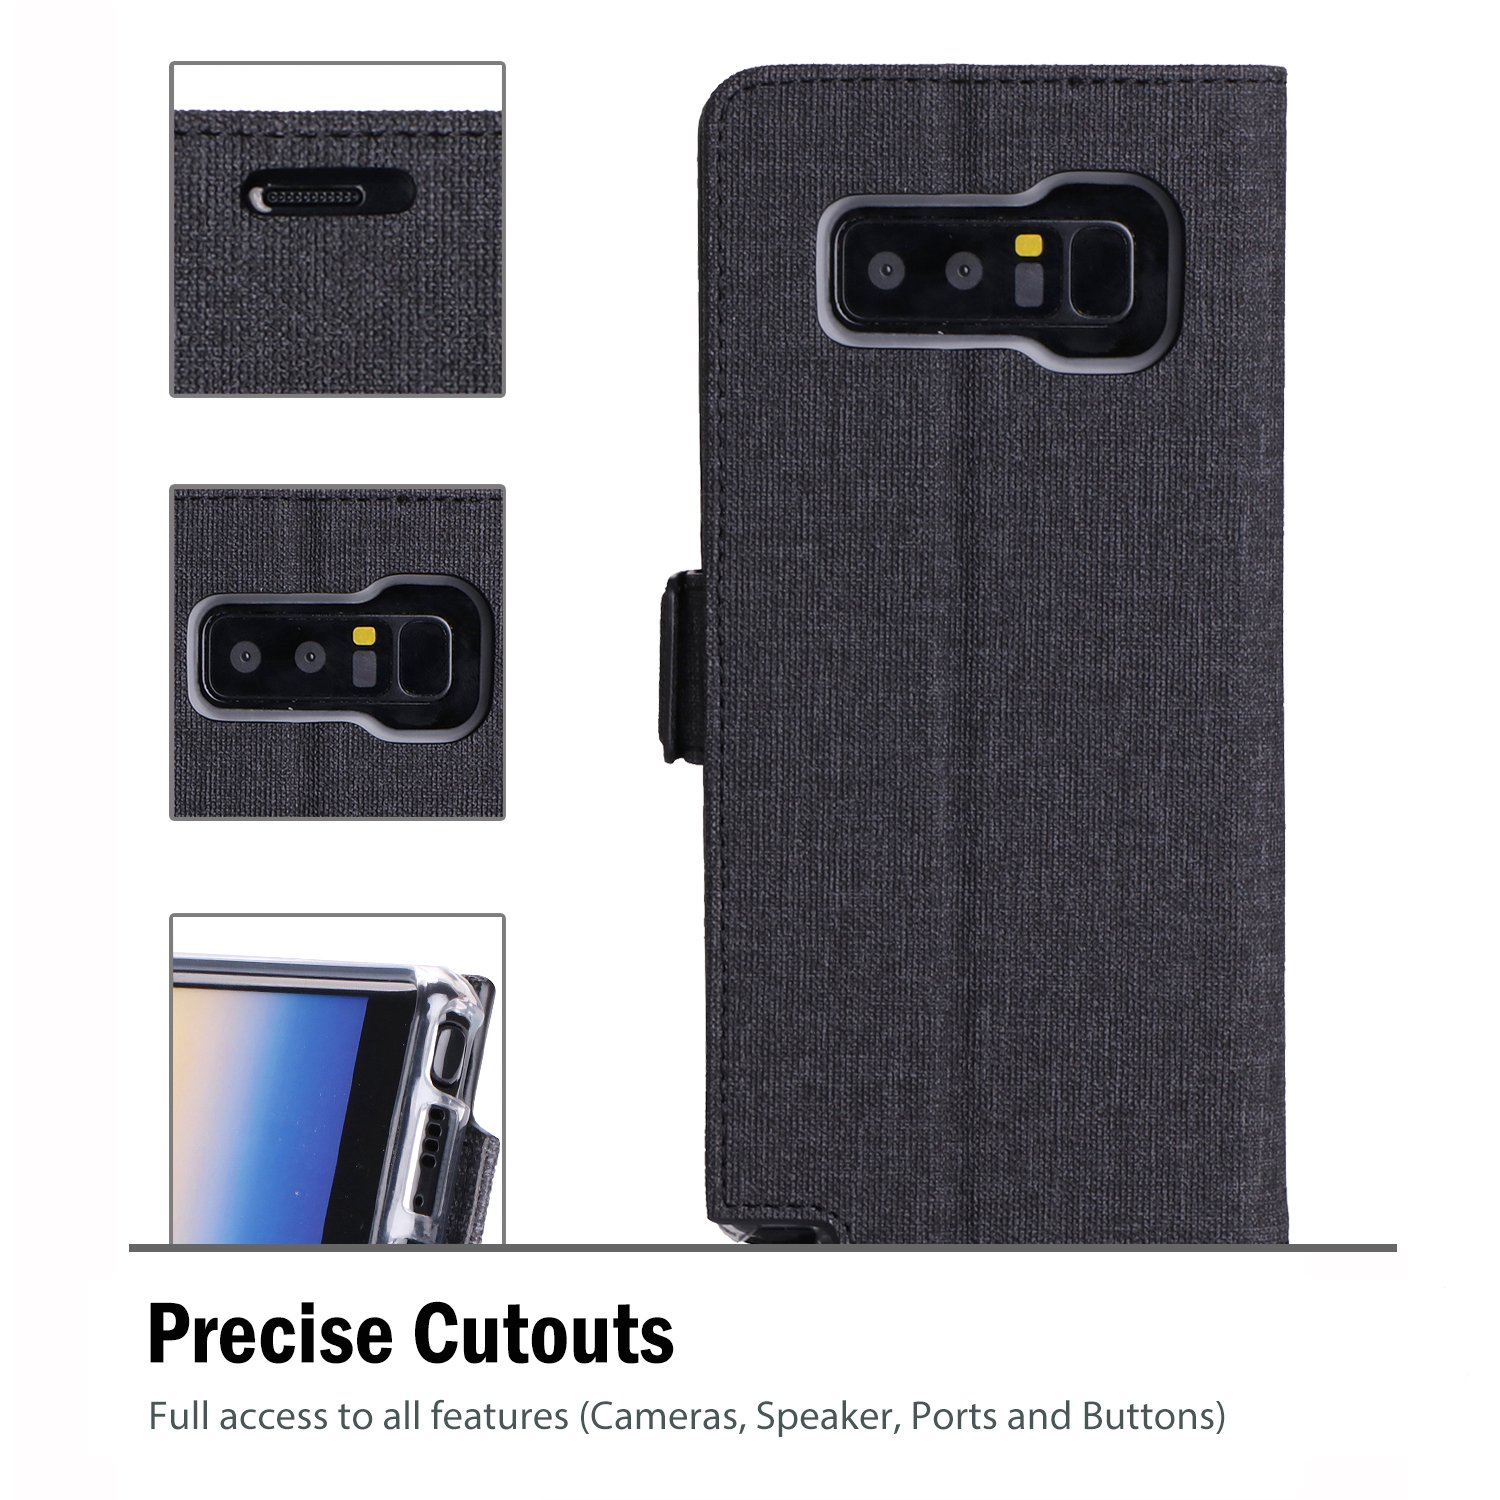 Samsung Galaxy Note 8 Wallet Case, ProCase Folio Folding Wallet Case Flip Cover Protective Case for Galaxy Note 8 2017 Release, With Card Slots and Kickstand -Black by ProCase (Image #5)